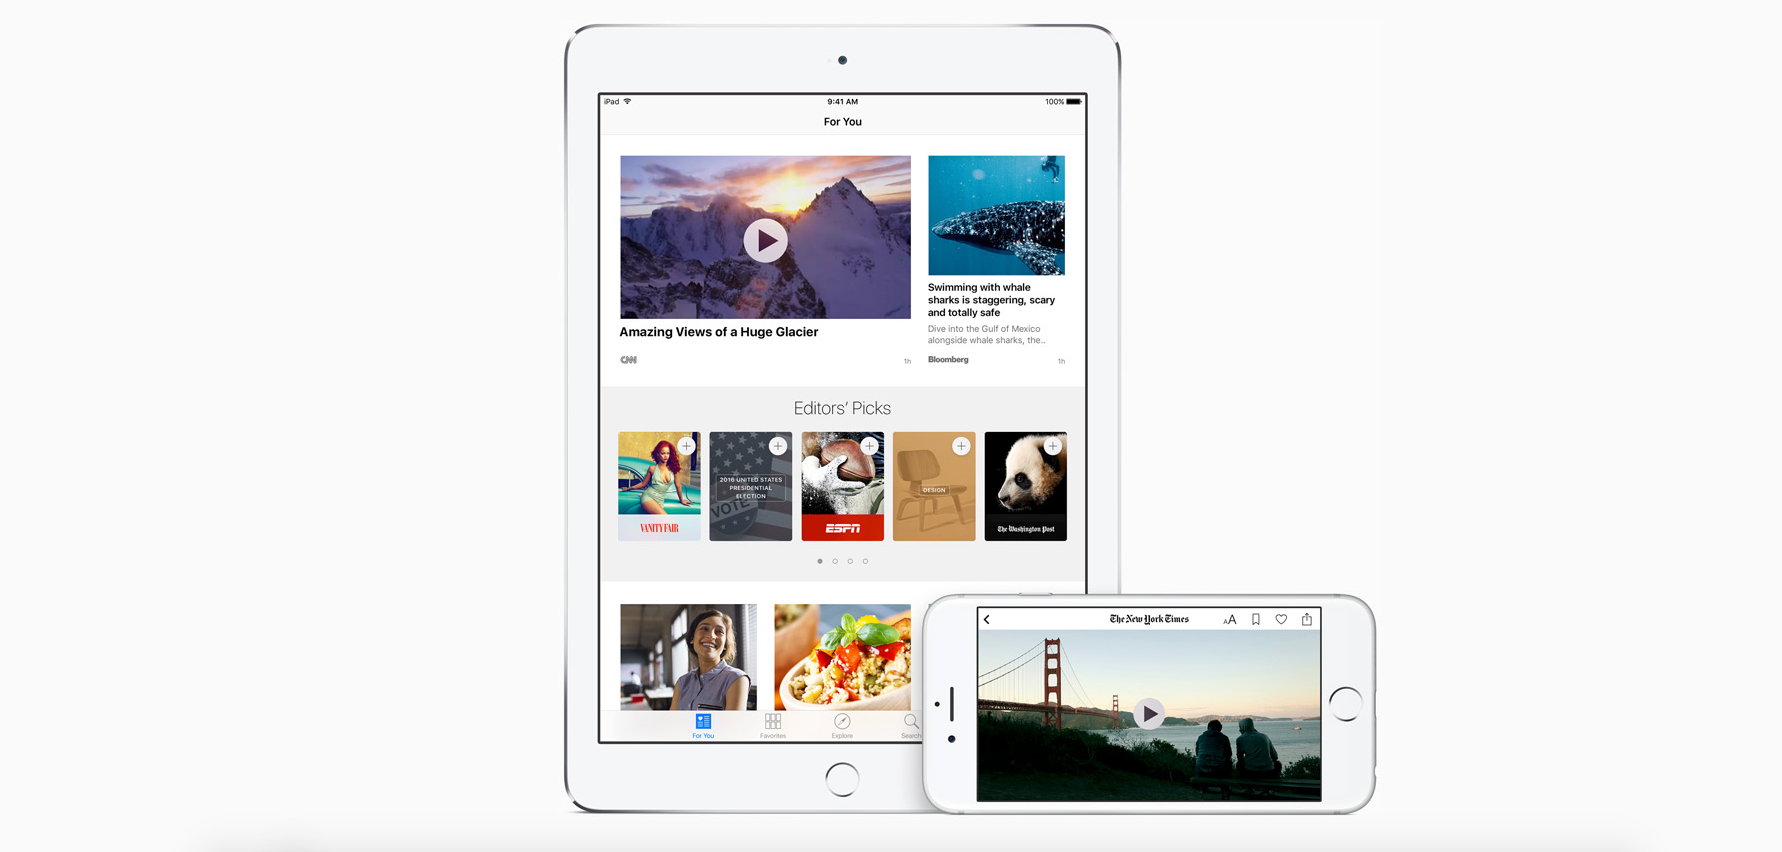 Apple releases iOS 9.3 beta 4 to registered developers